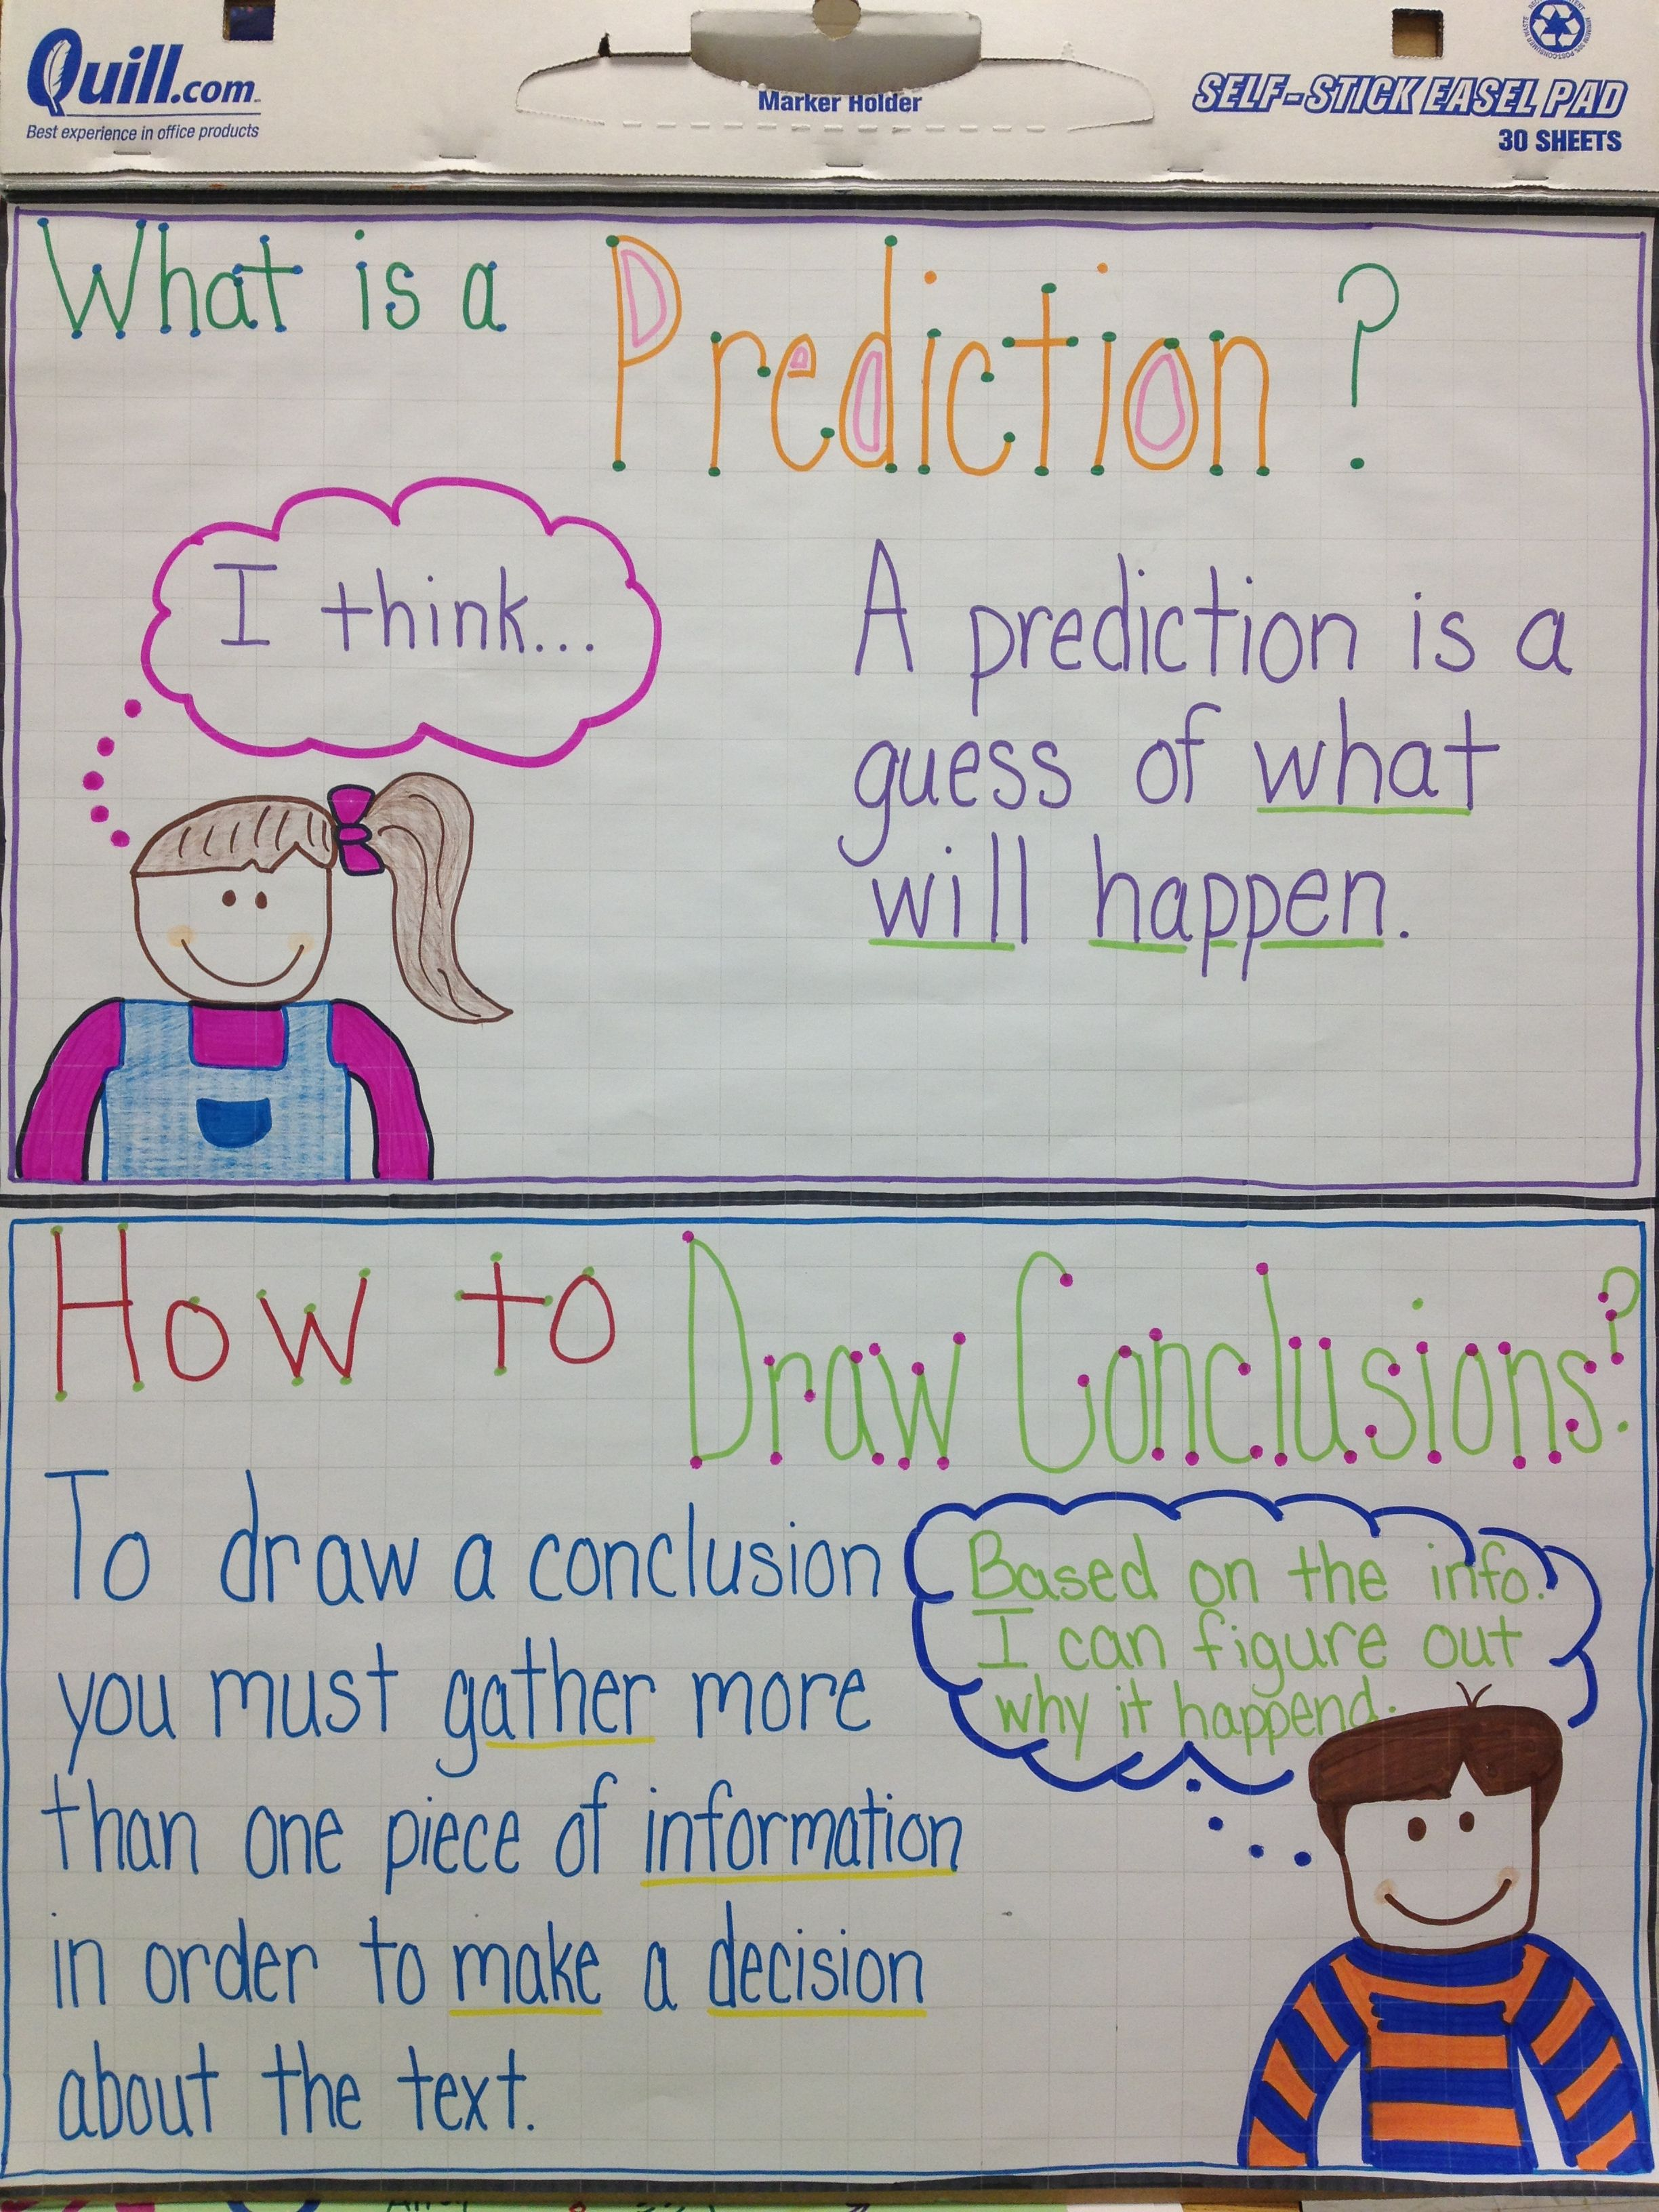 To A Draw Conclusion You Must Gather More Than One Piece Of Information In Order To Make A De Drawing Conclusions Kindergarten Anchor Charts Reading Classroom [ 3264 x 2448 Pixel ]